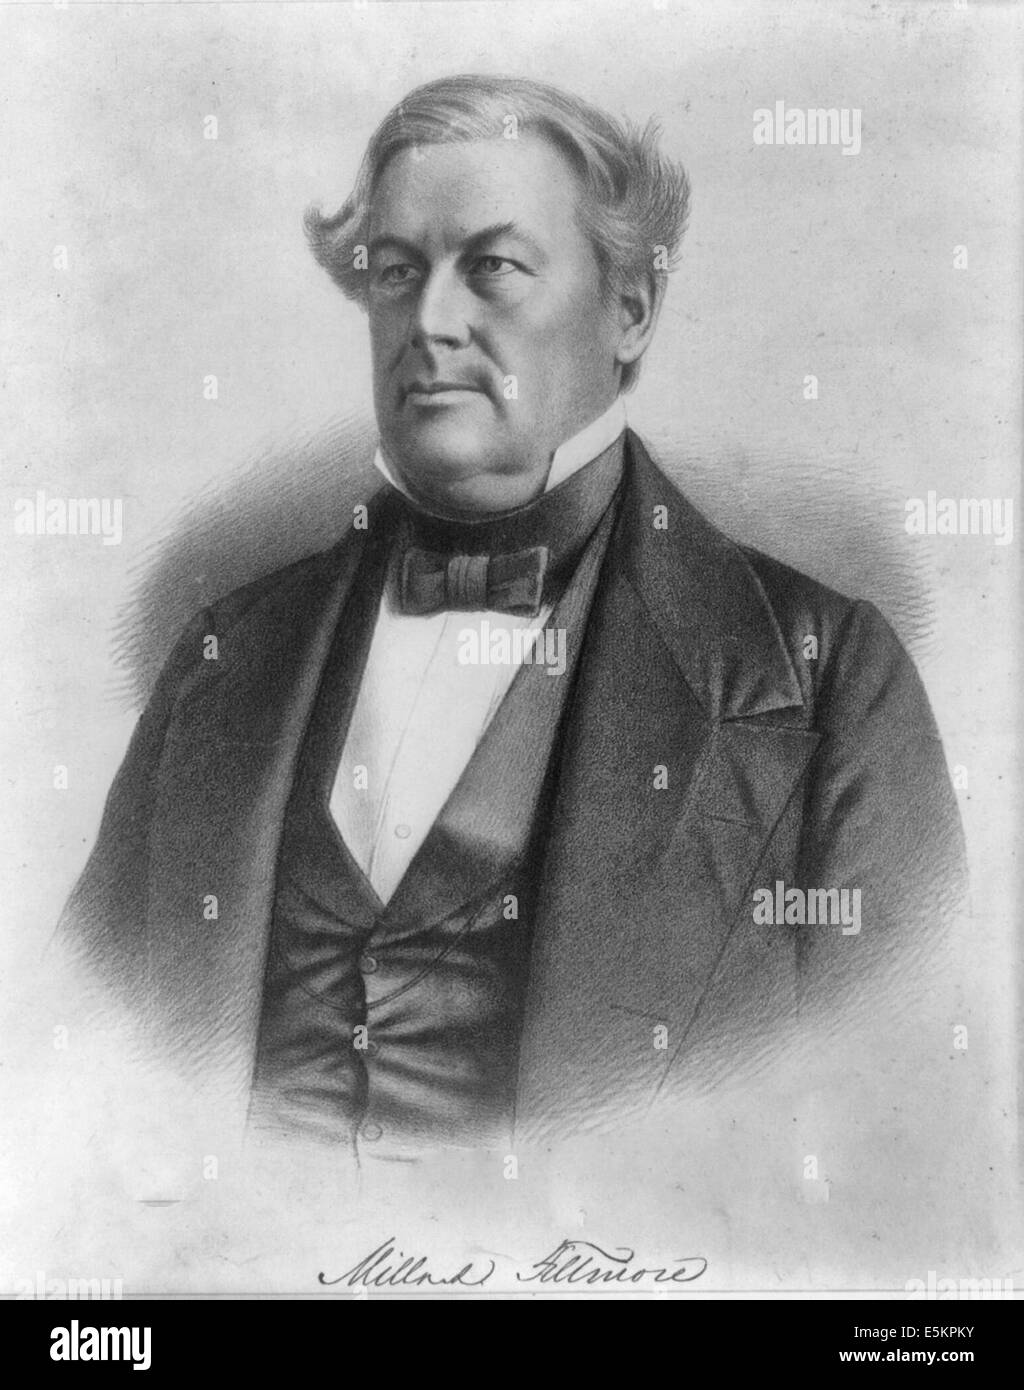 Millard Fillmore, 13th President of the USA, 1850-1853 Stock Photo